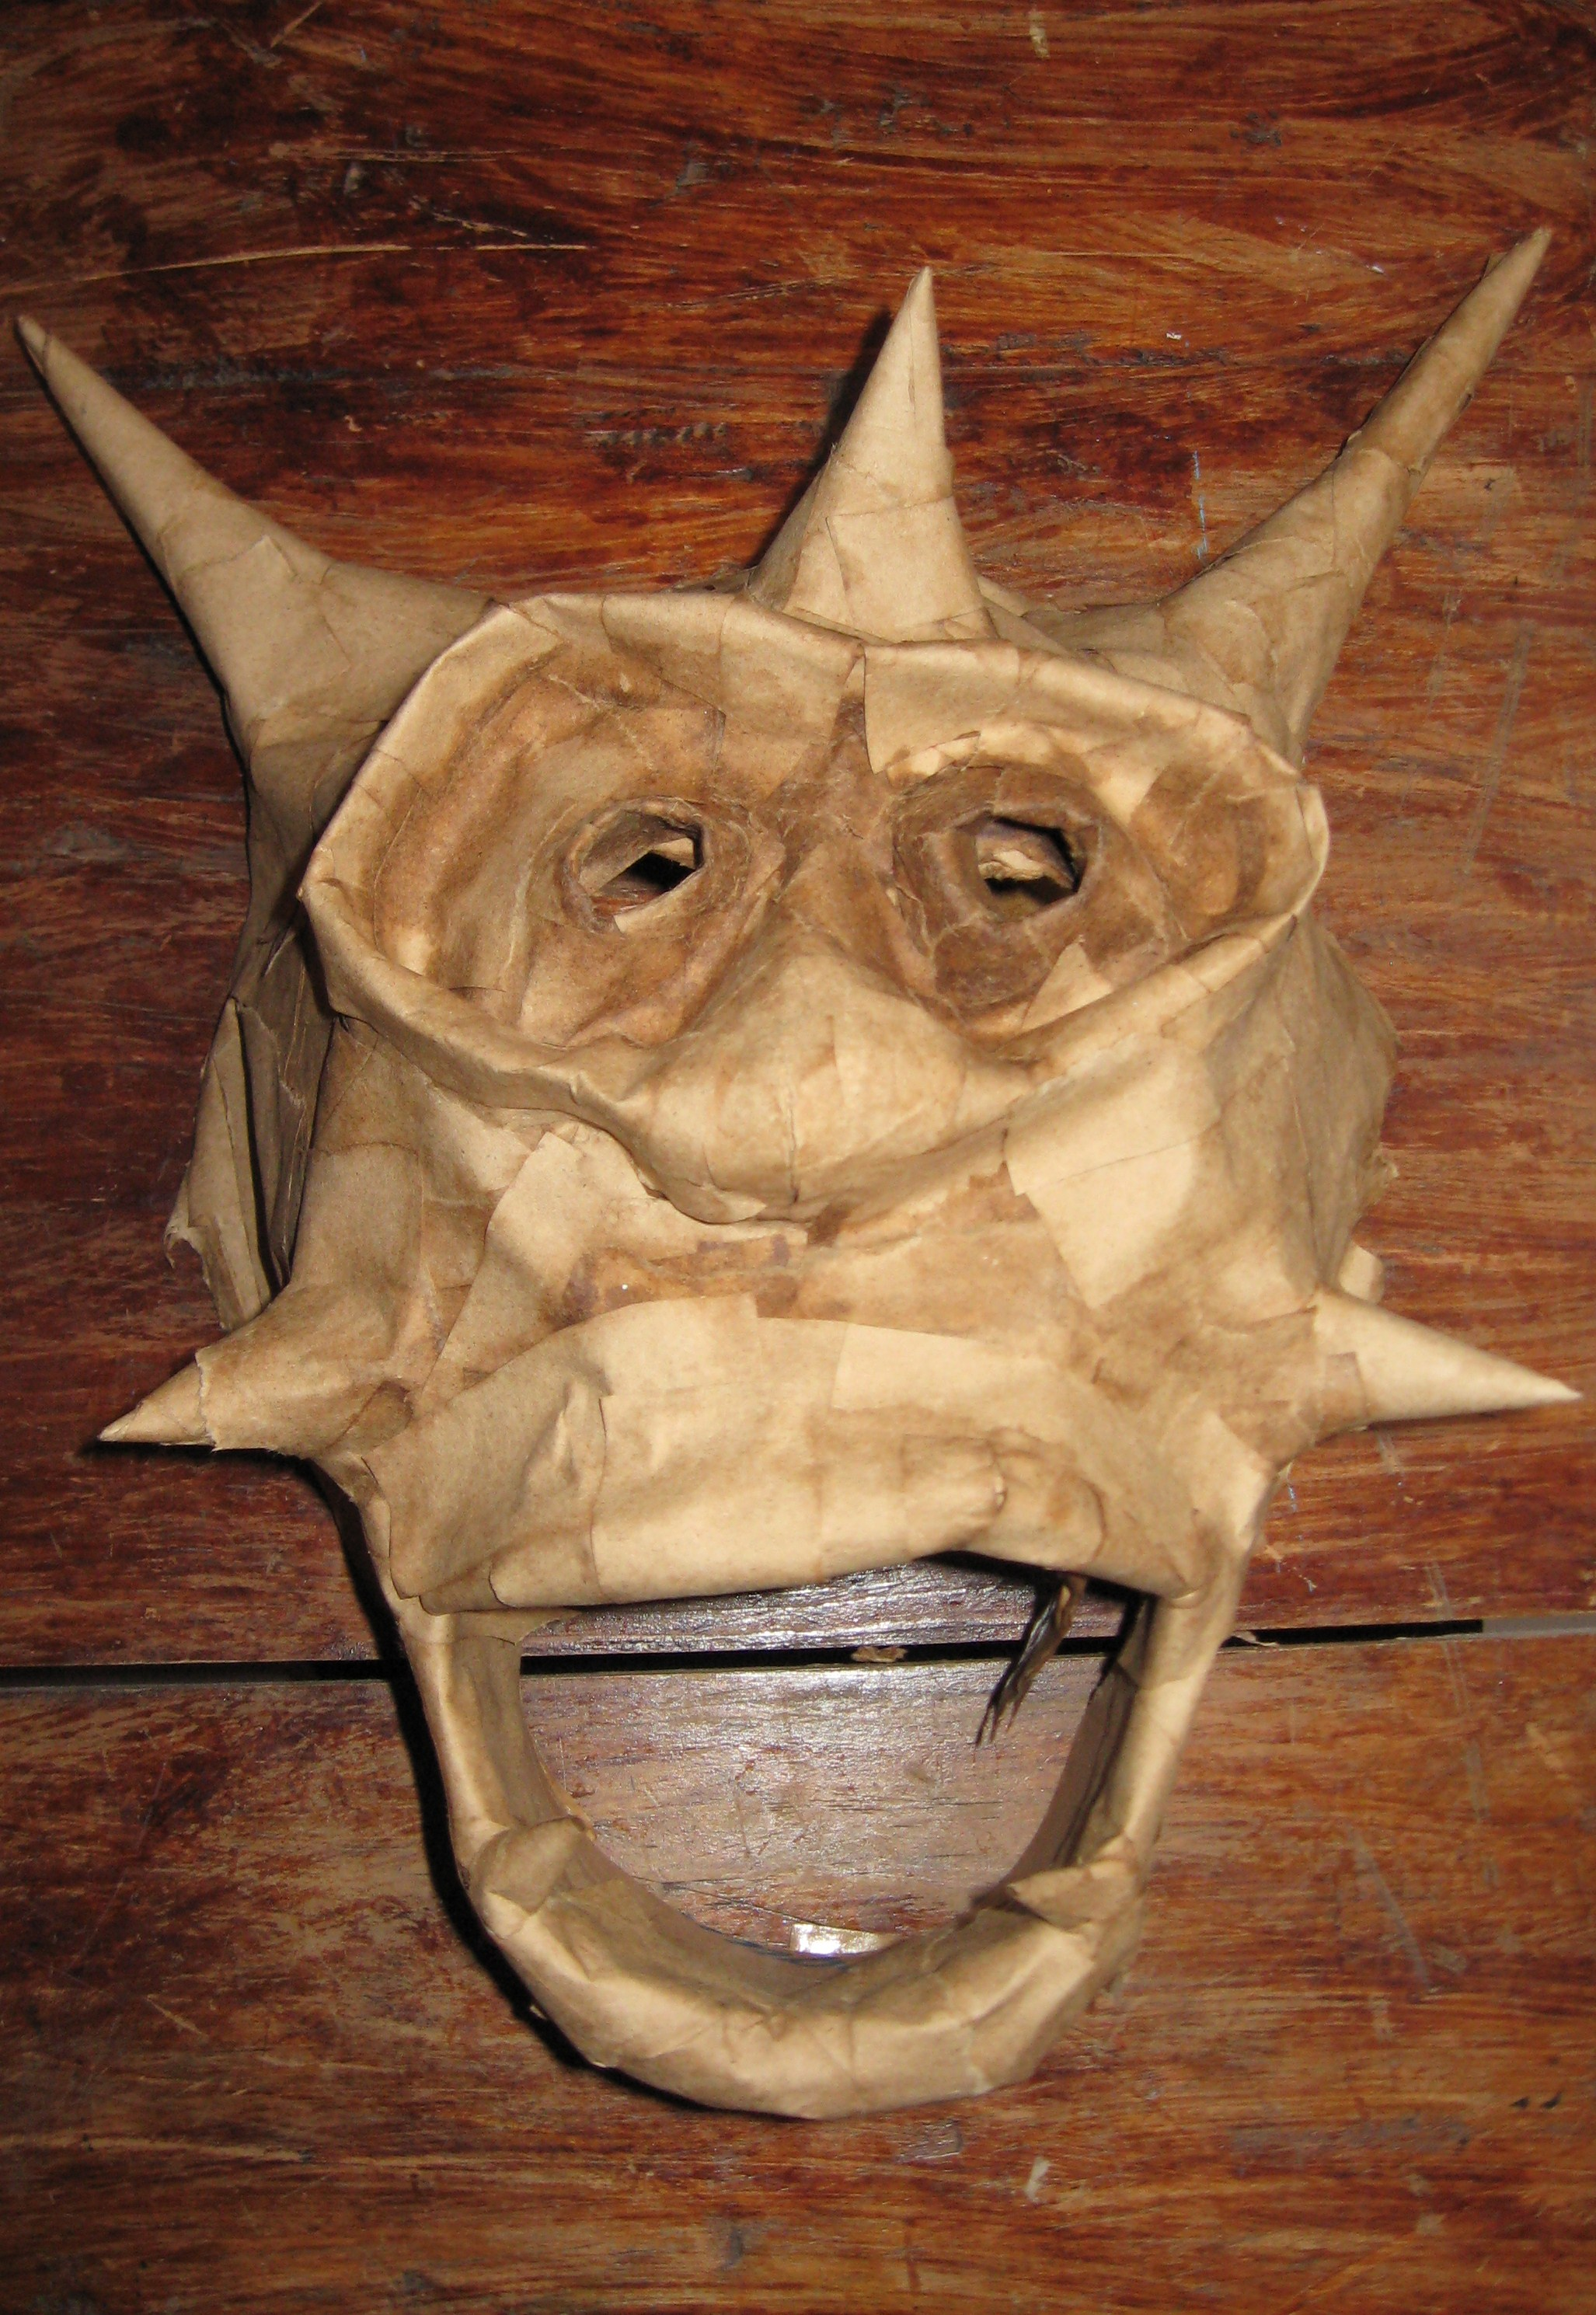 Do it yourself: Make a mask without a mold